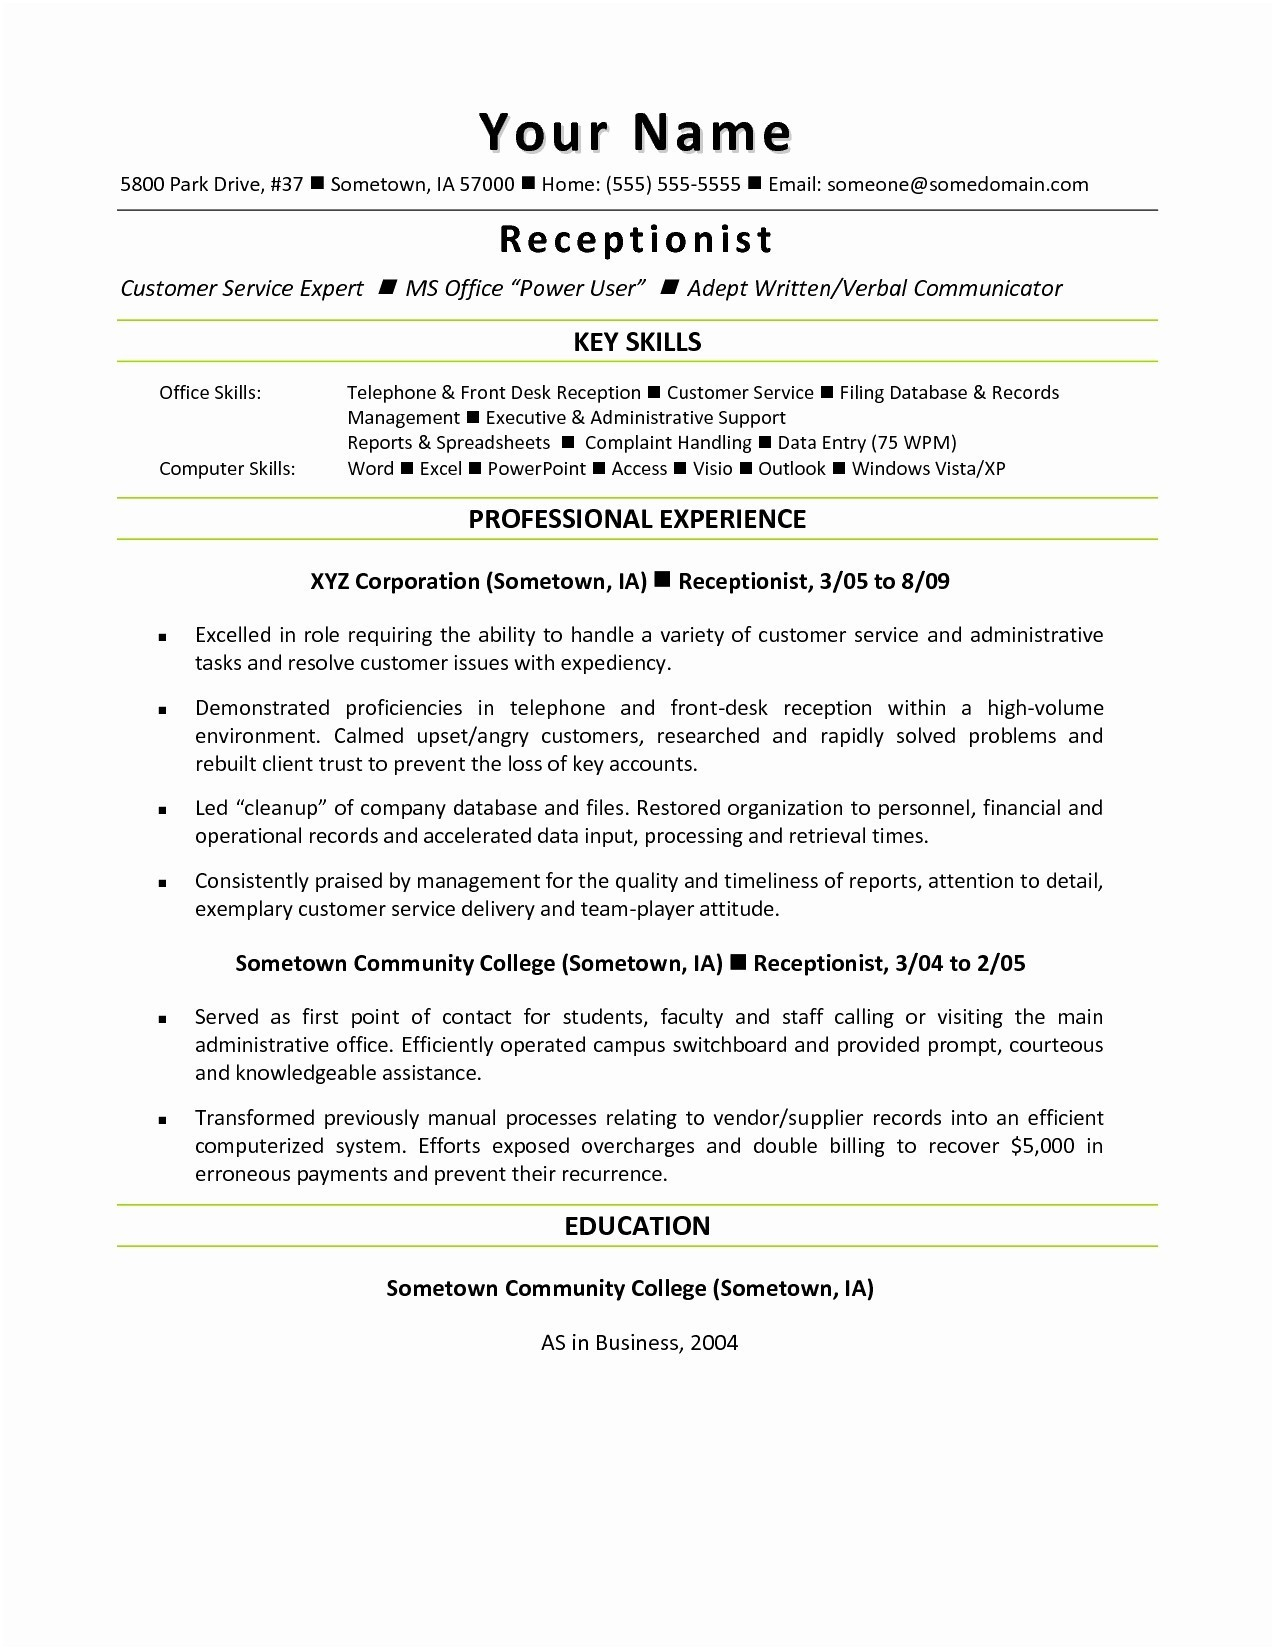 resume and cover letter template microsoft word Collection-Resume Microsoft Word Fresh Resume Mail Format Sample Fresh Beautiful Od Consultant Cover Letter Information 5-g